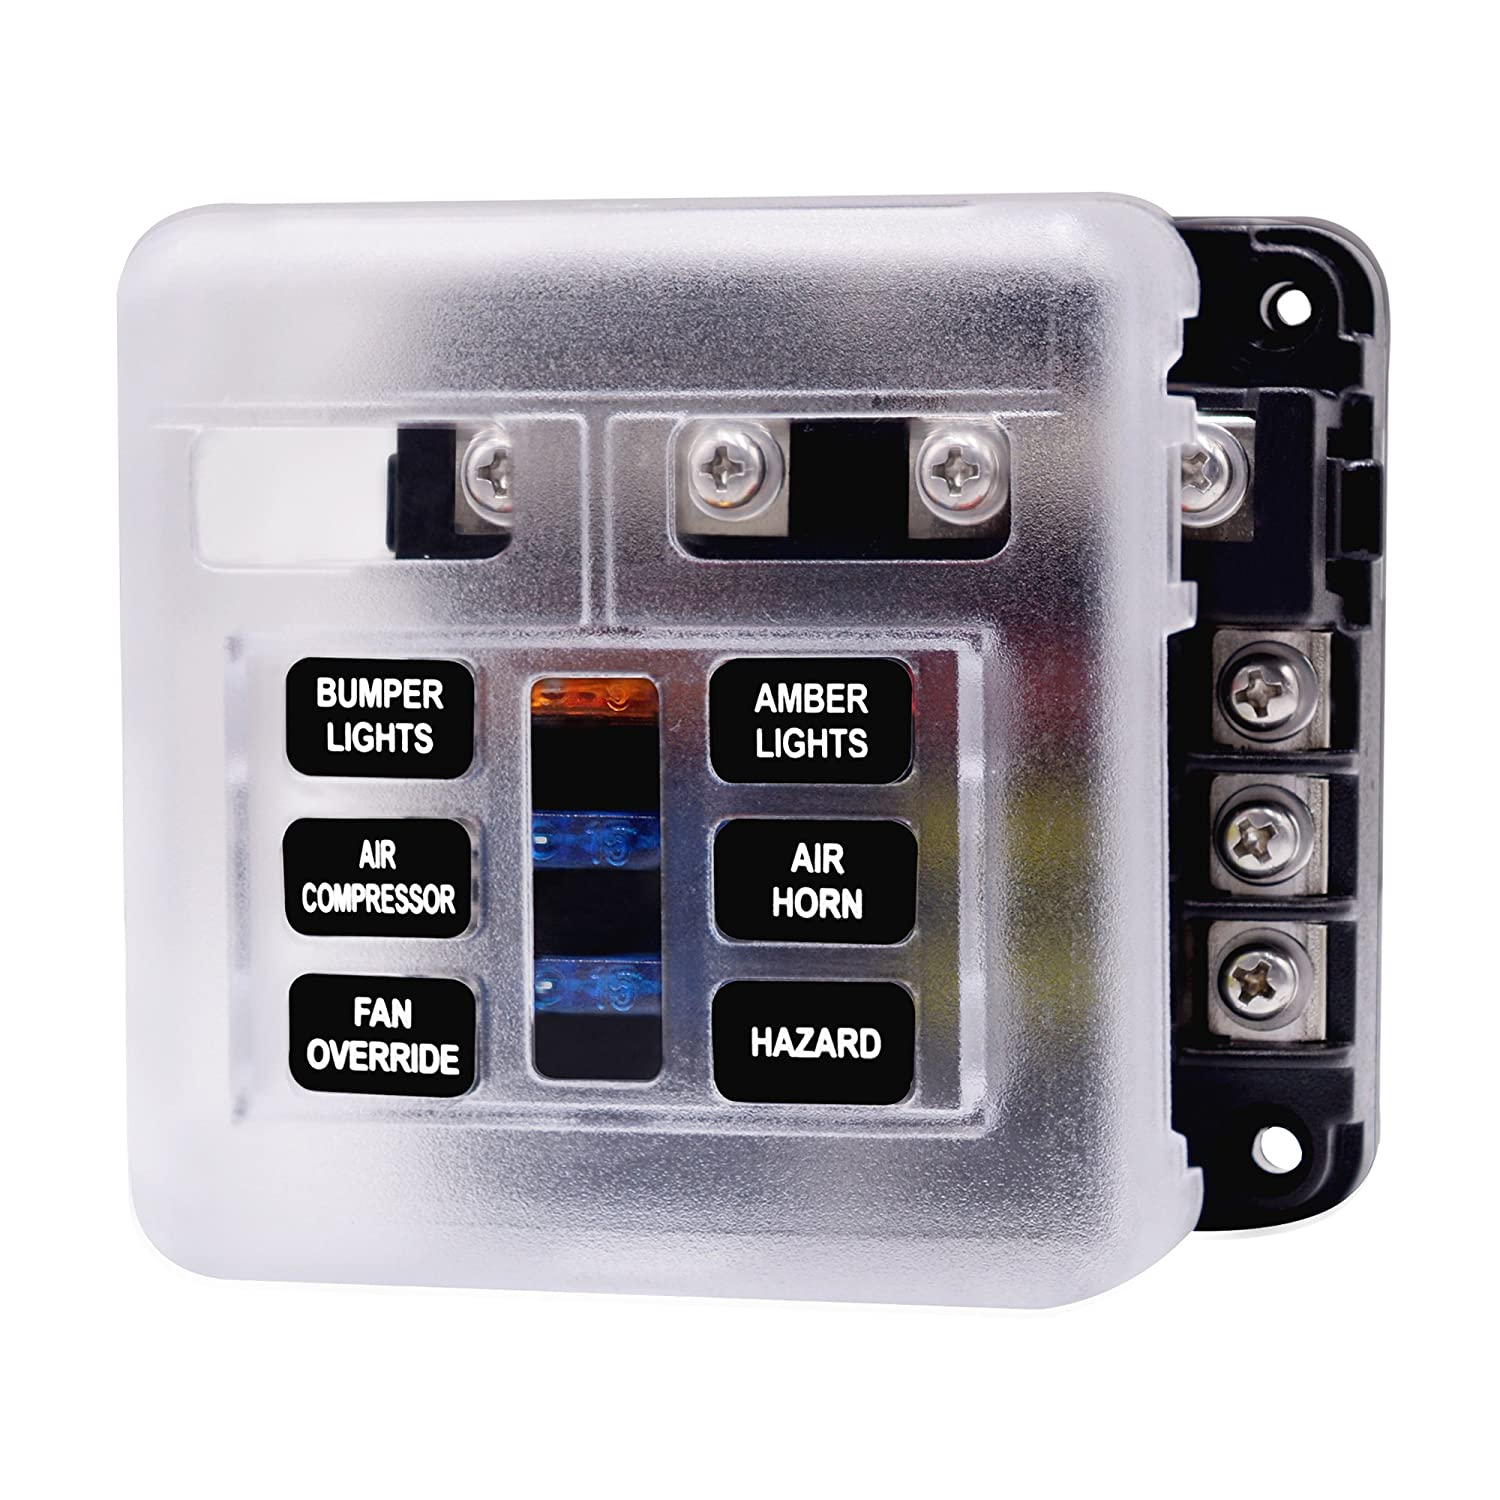 SixDu 6/12 Way Blade Fuse Box Single Positive and Negative Pole PBT Fuse Box with LED Indicator Double Fuse With PPX40 Sticker for Automotive Car Marine Boat (12 way)